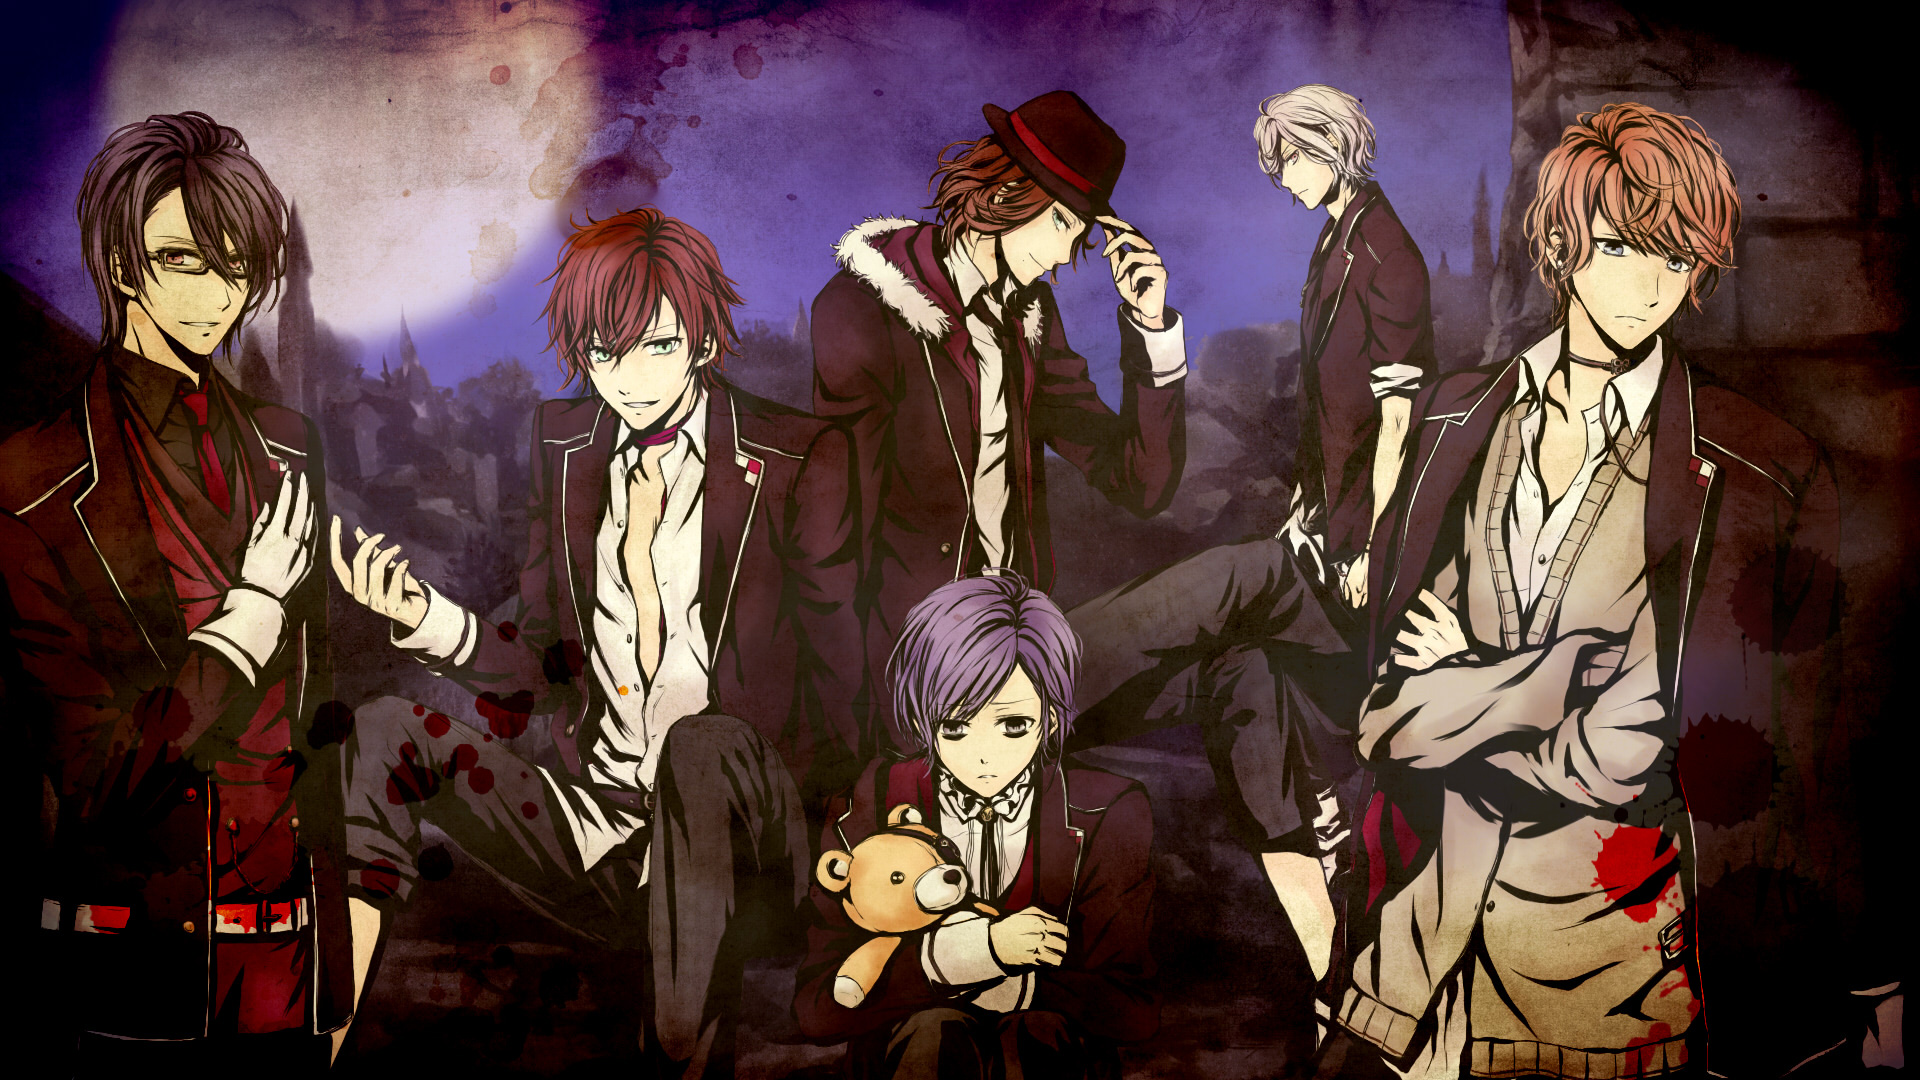 Anime Wallpapers Diabolik Lovers HD 4K Download For Mobile iPhone & PC